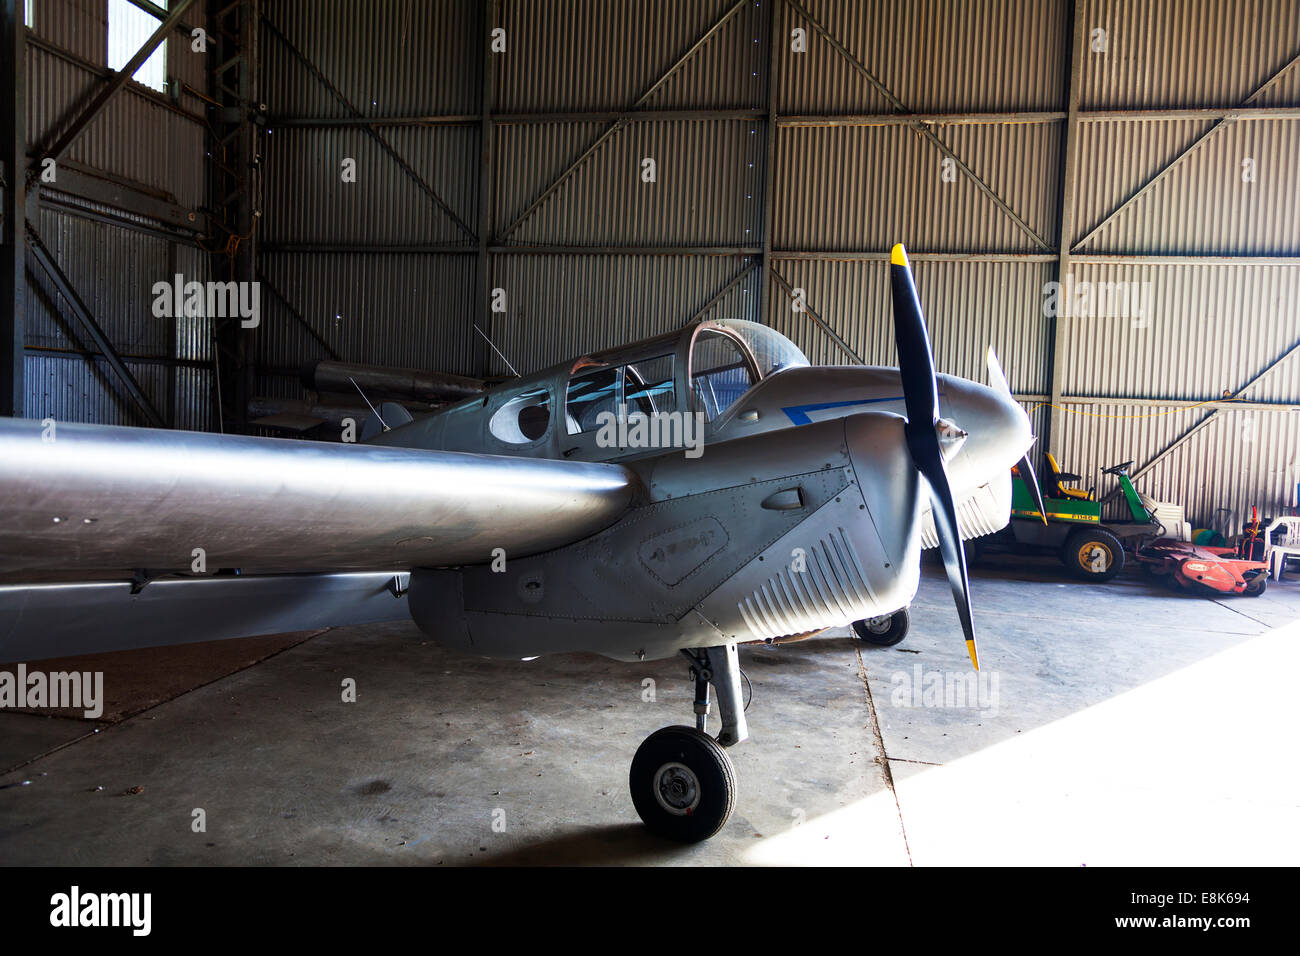 twin engined 1946 Miles Gemini plane airplane aircraft light lightweight on ground in hanger prop propeller - Stock Image